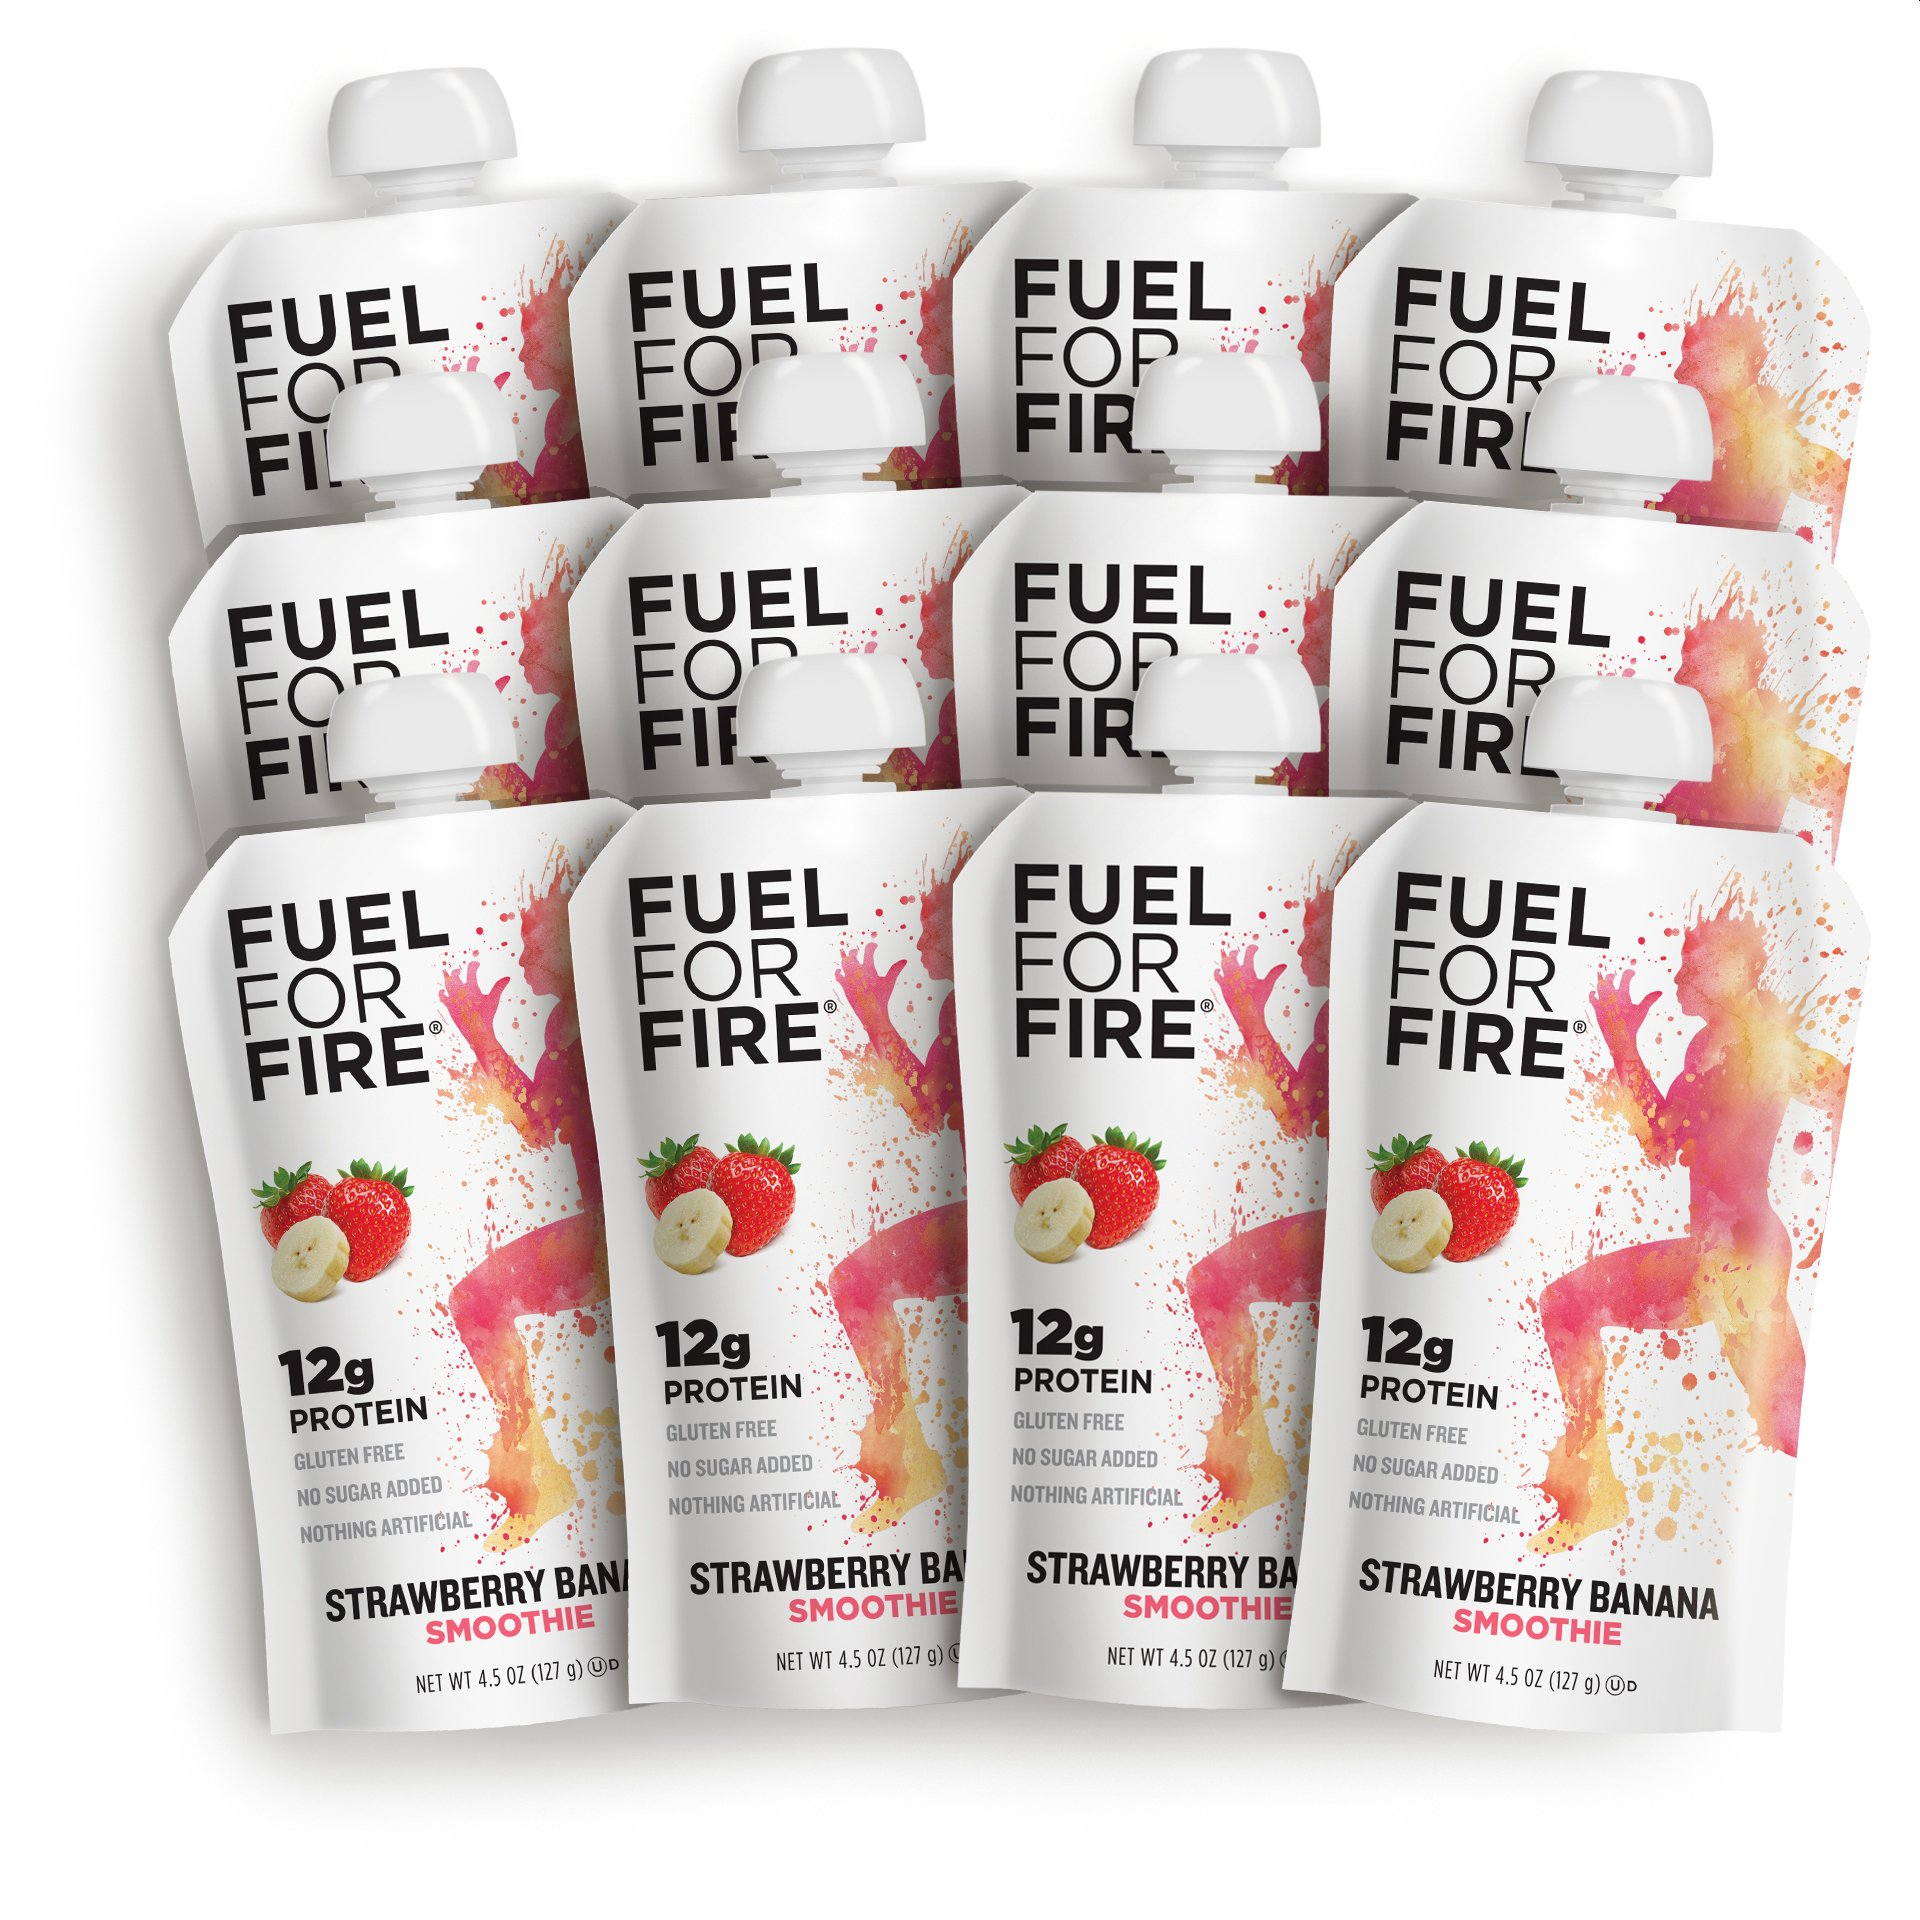 Fuel For Fire - Strawberry Banana (12 Pack) Fruit & Protein Smoothie Squeeze Pouch | Perfect for Workouts, Kids, Snacking - Gluten-Free, Soy-Free, Kosher, No Added Sugar (4.5 ounce pouches) by FUEL FOR FIRE